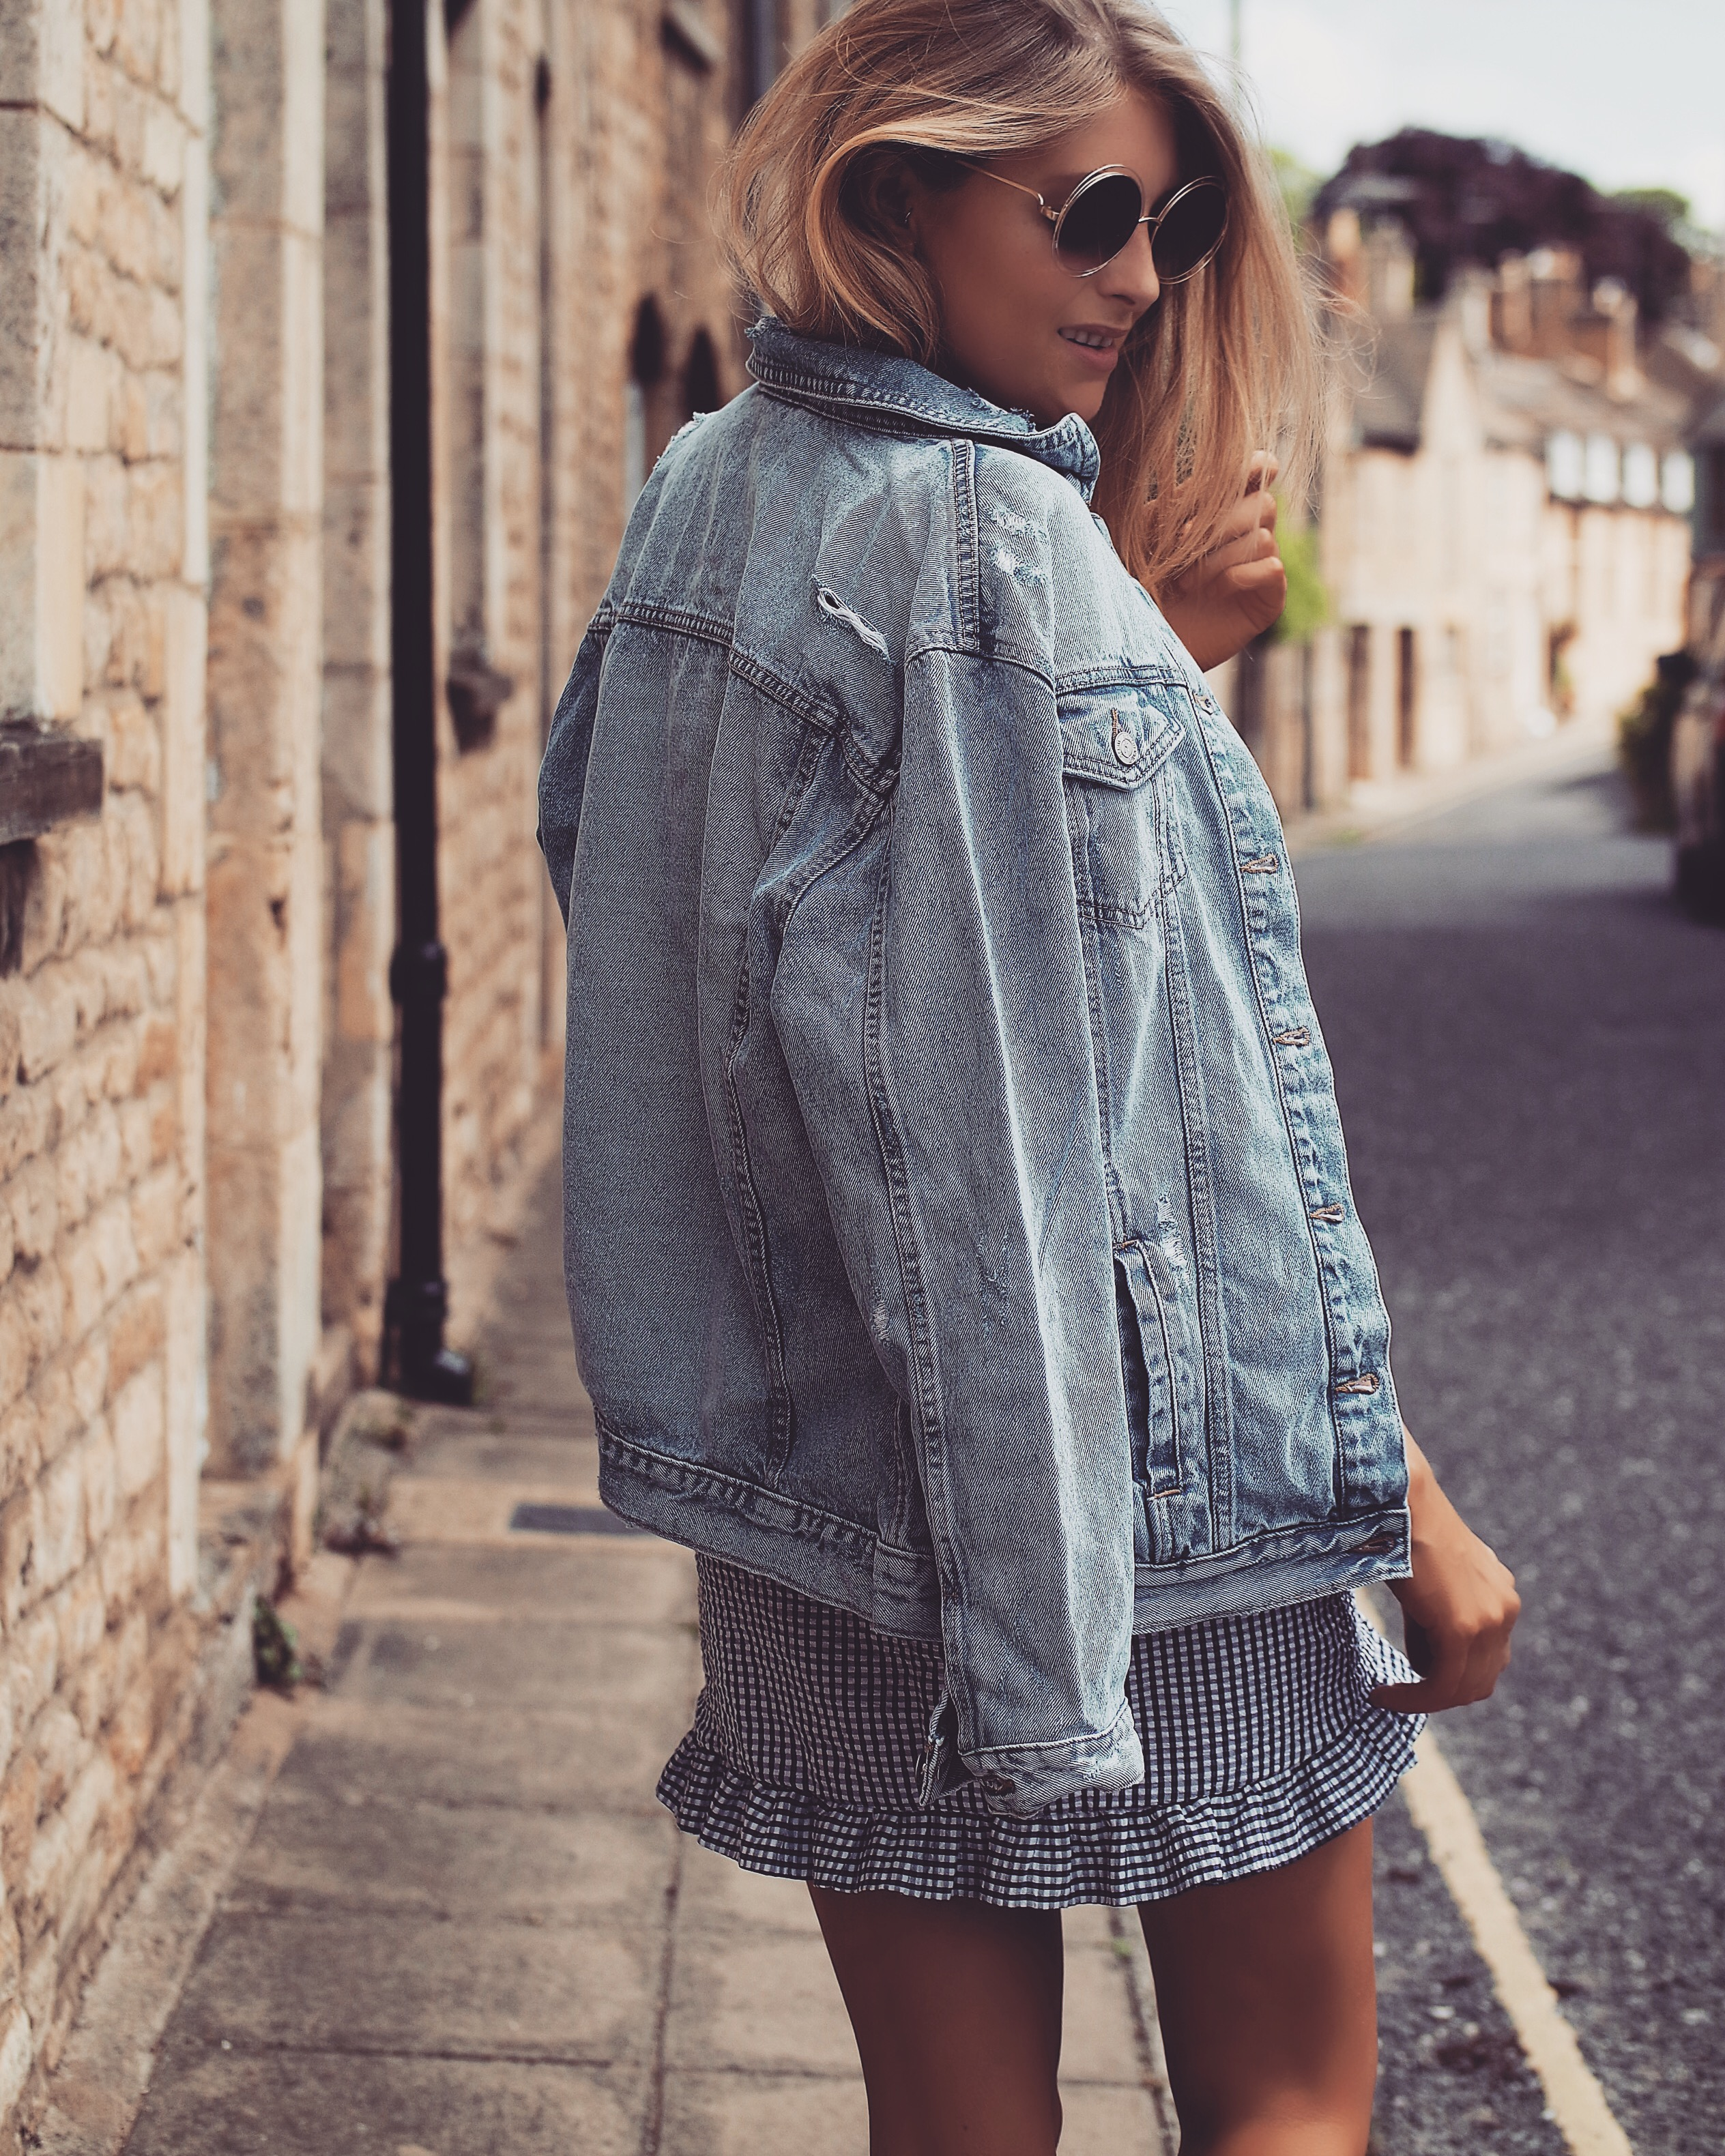 Summer BBQ Style - Oversized Denim Jacket | Love Style ...